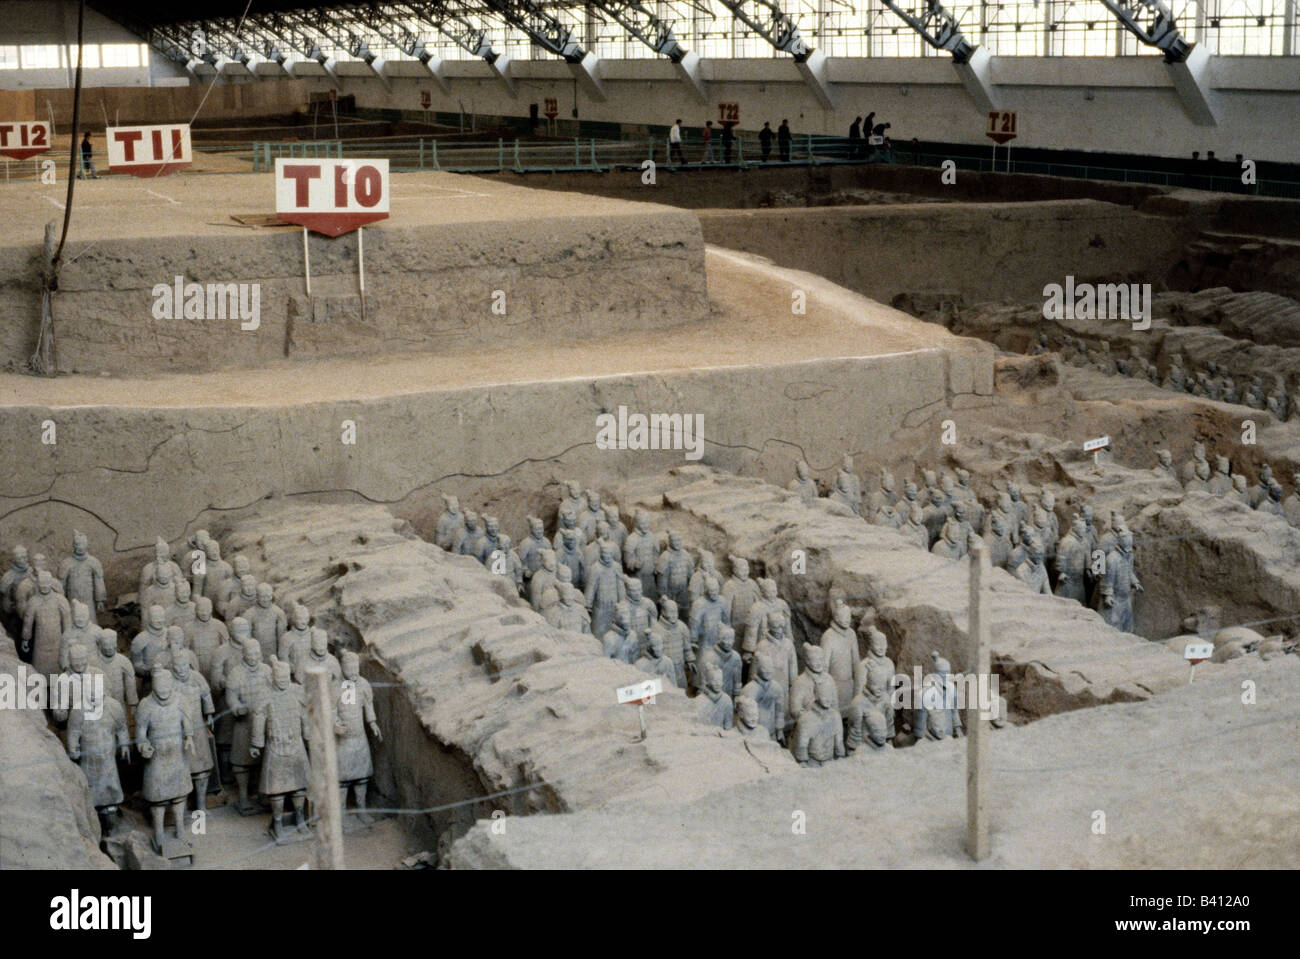 geography / travel, China, Xian, museum, stone army of emperor Qui Hunag Di (221 - 210 BC), terracotta figures, - Stock Image